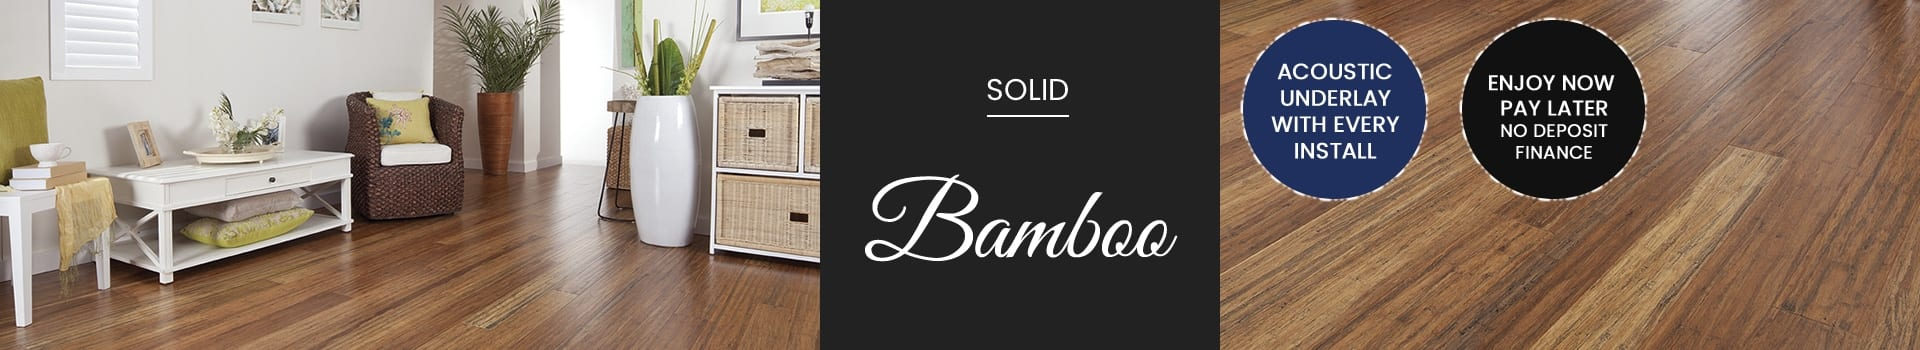 Melbourne solid bamboo floors